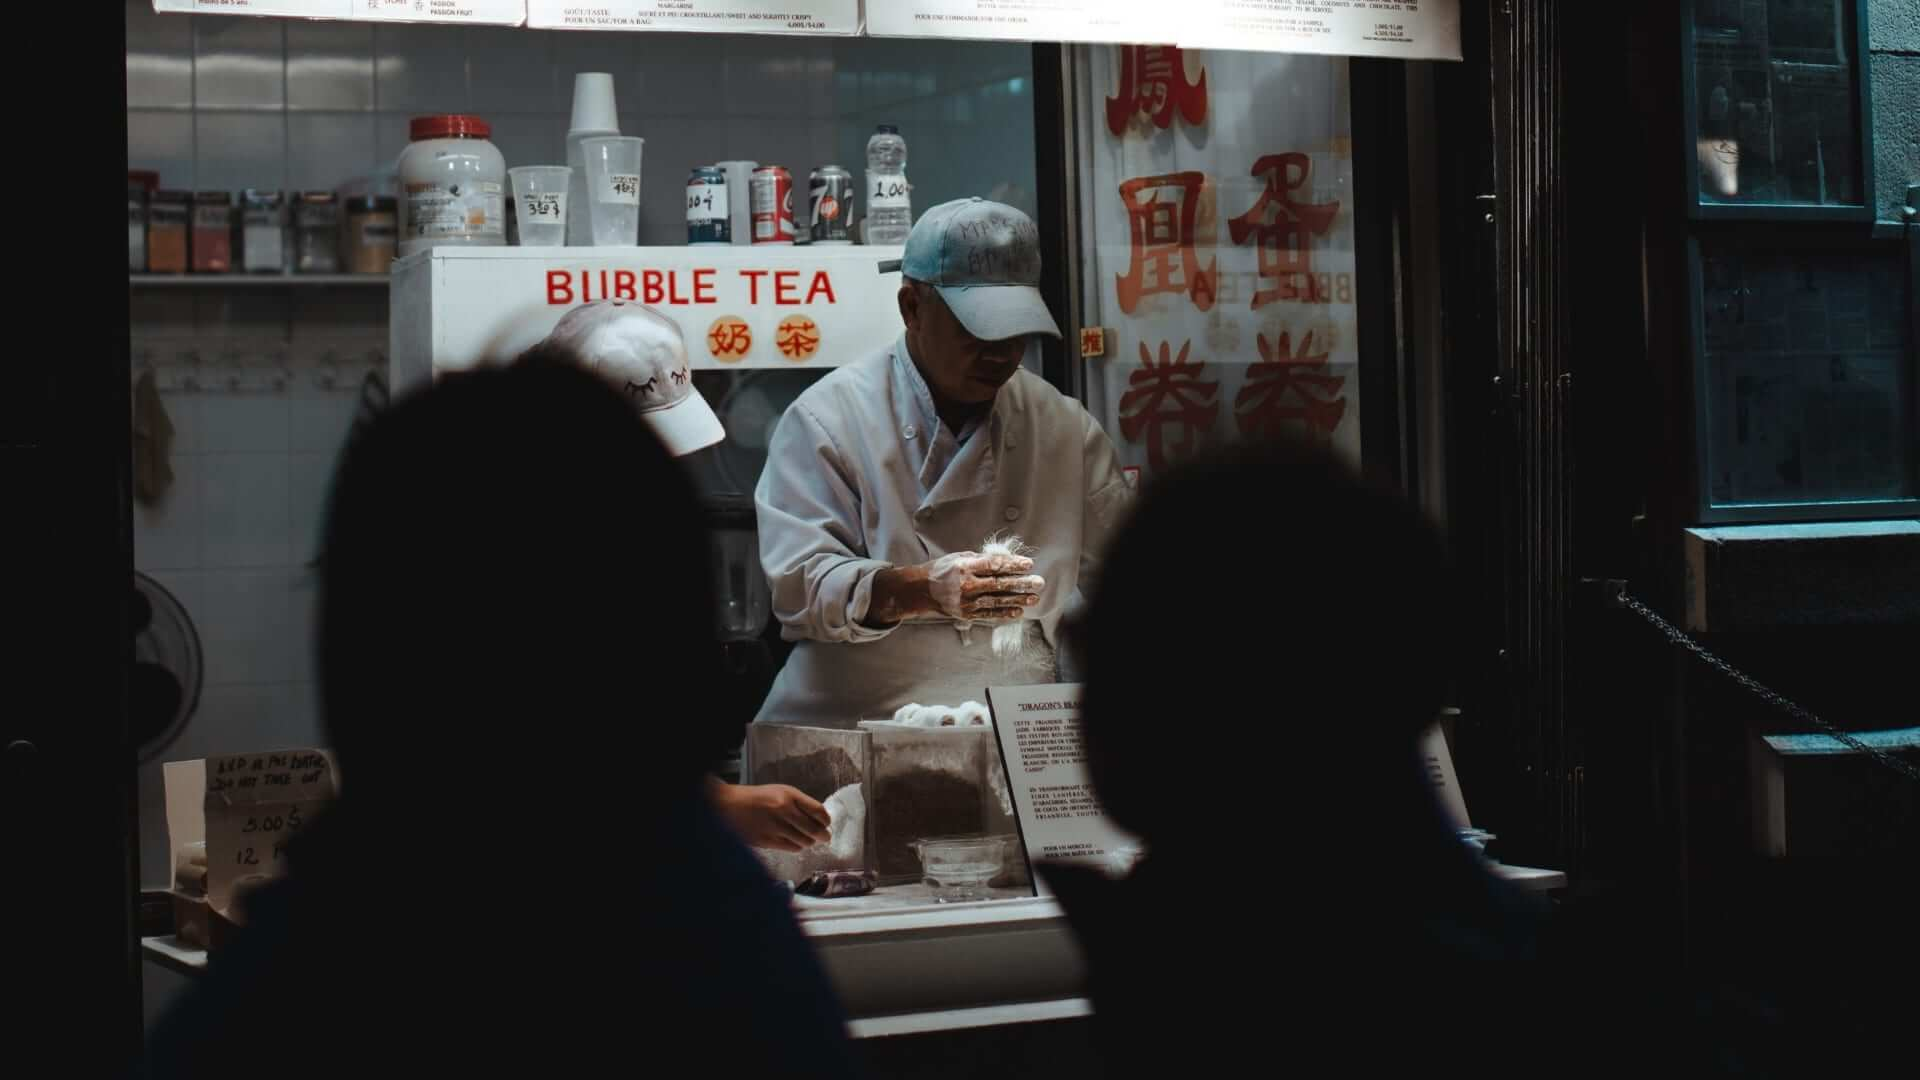 A man is selling bubble tea from a stall in the evening where there are two people waiting in Taiwan.